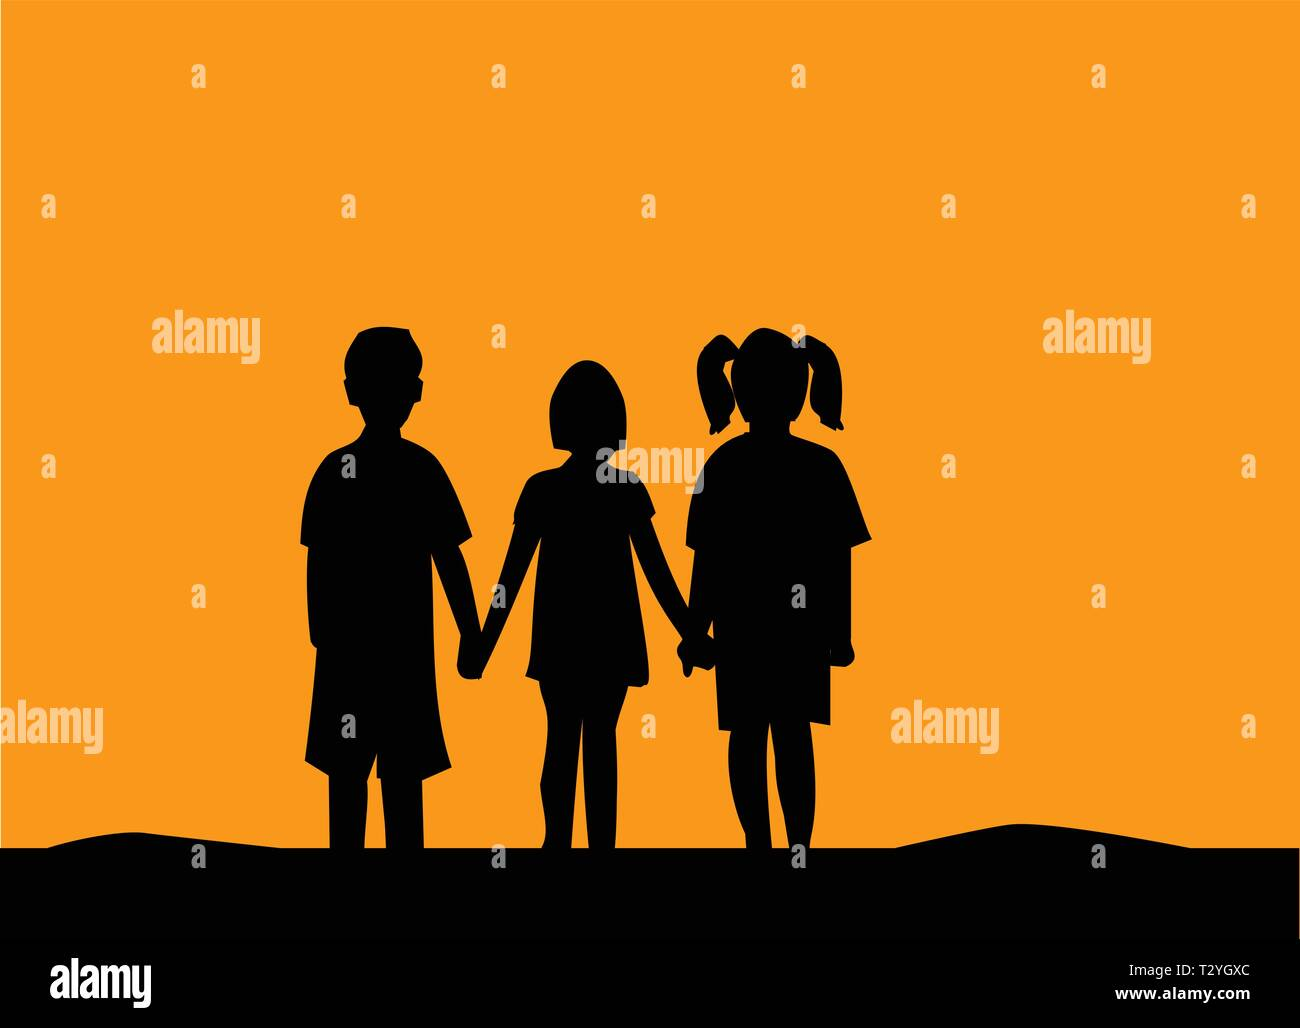 Silhouette of three children friendship at sunset.People friendship silhouette - Stock Vector